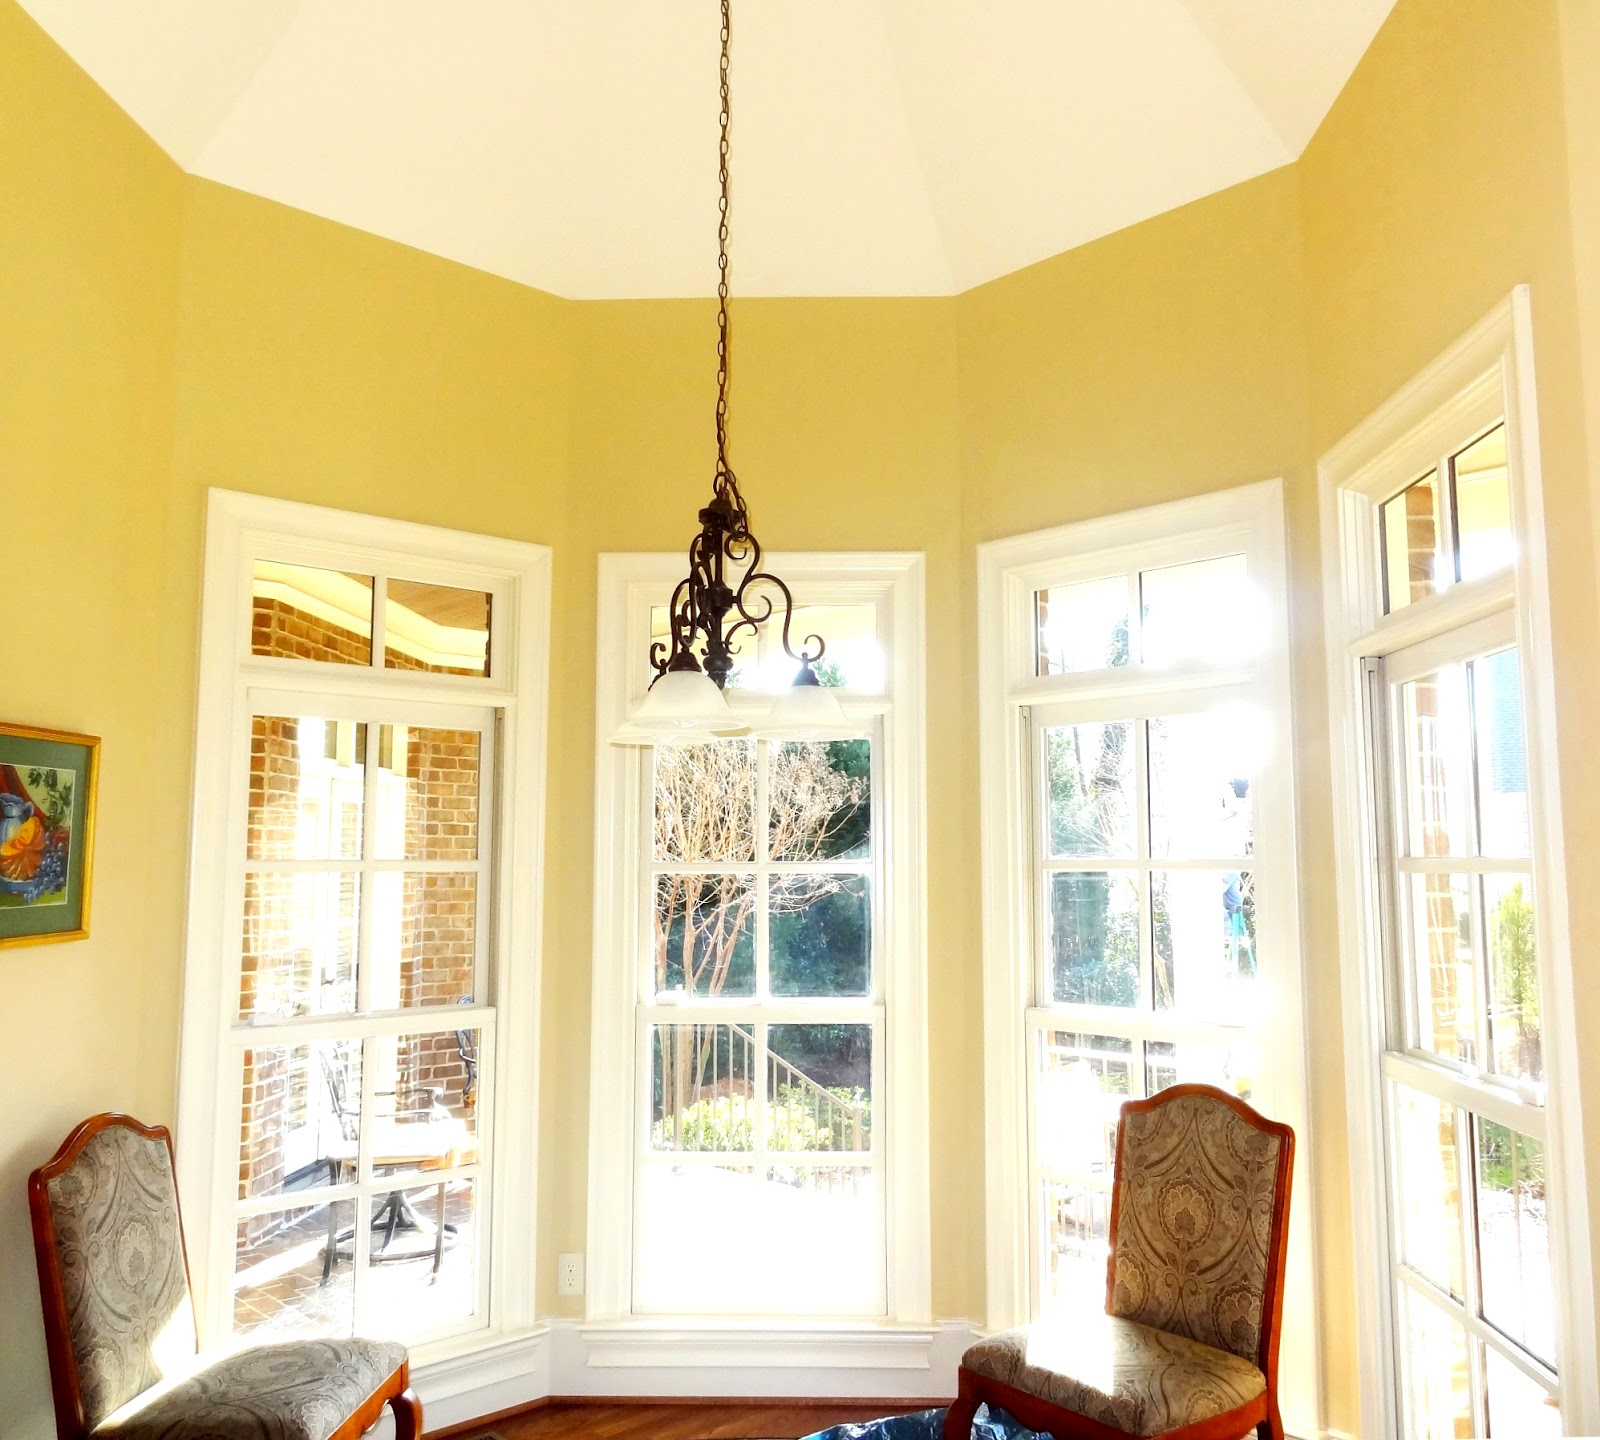 Bay Window Valances: Best Window Treatments For Bay Windows & How To Find